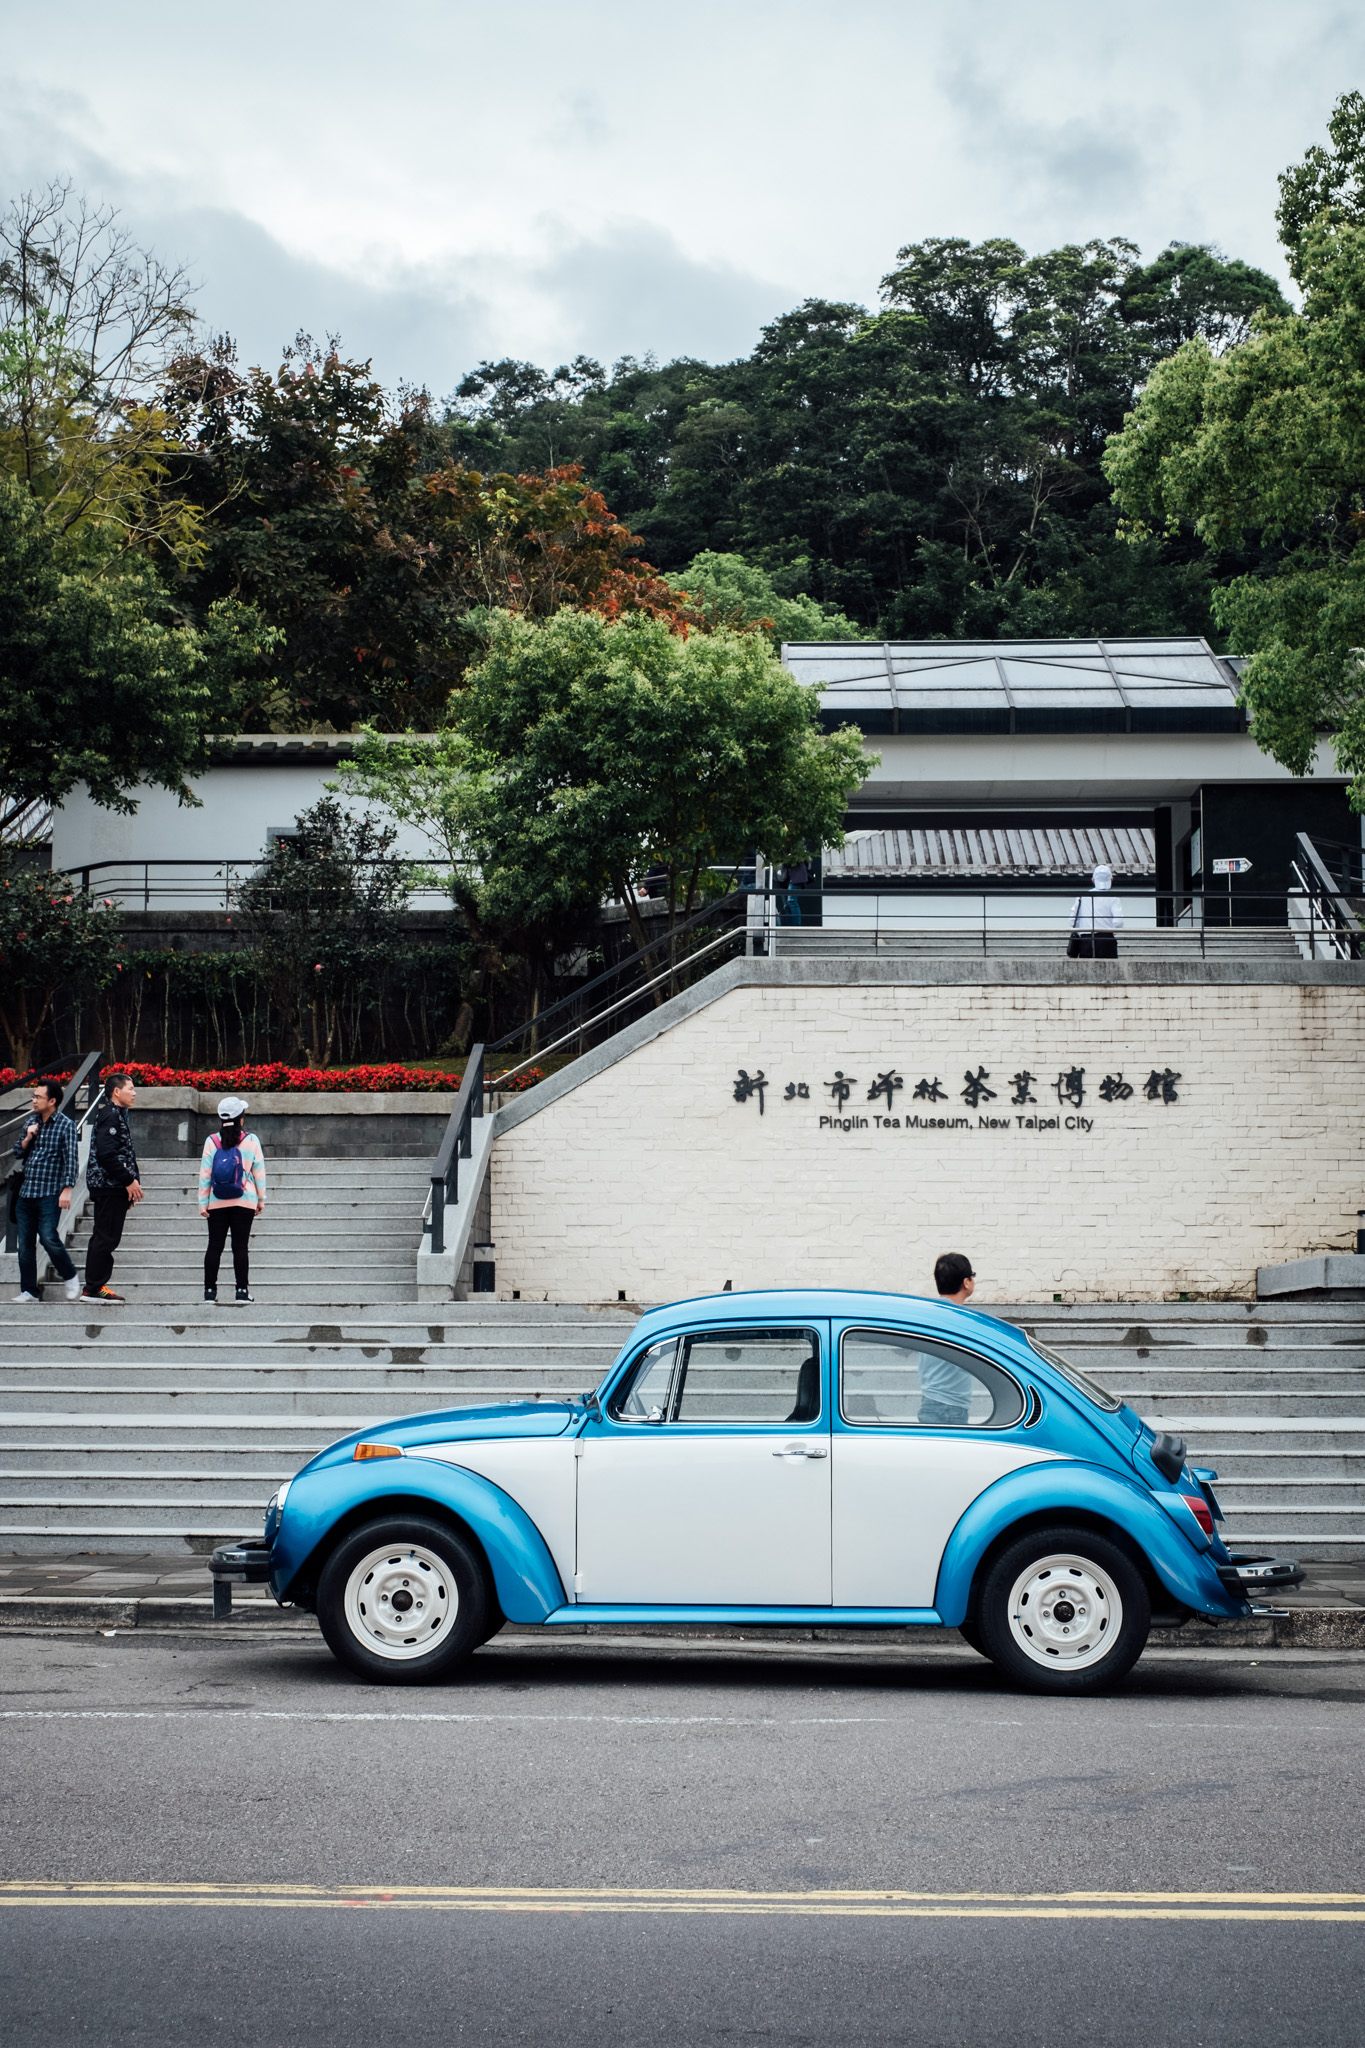 - I did not see very many vintage cars while I was in Taiwan. This was one of the few.